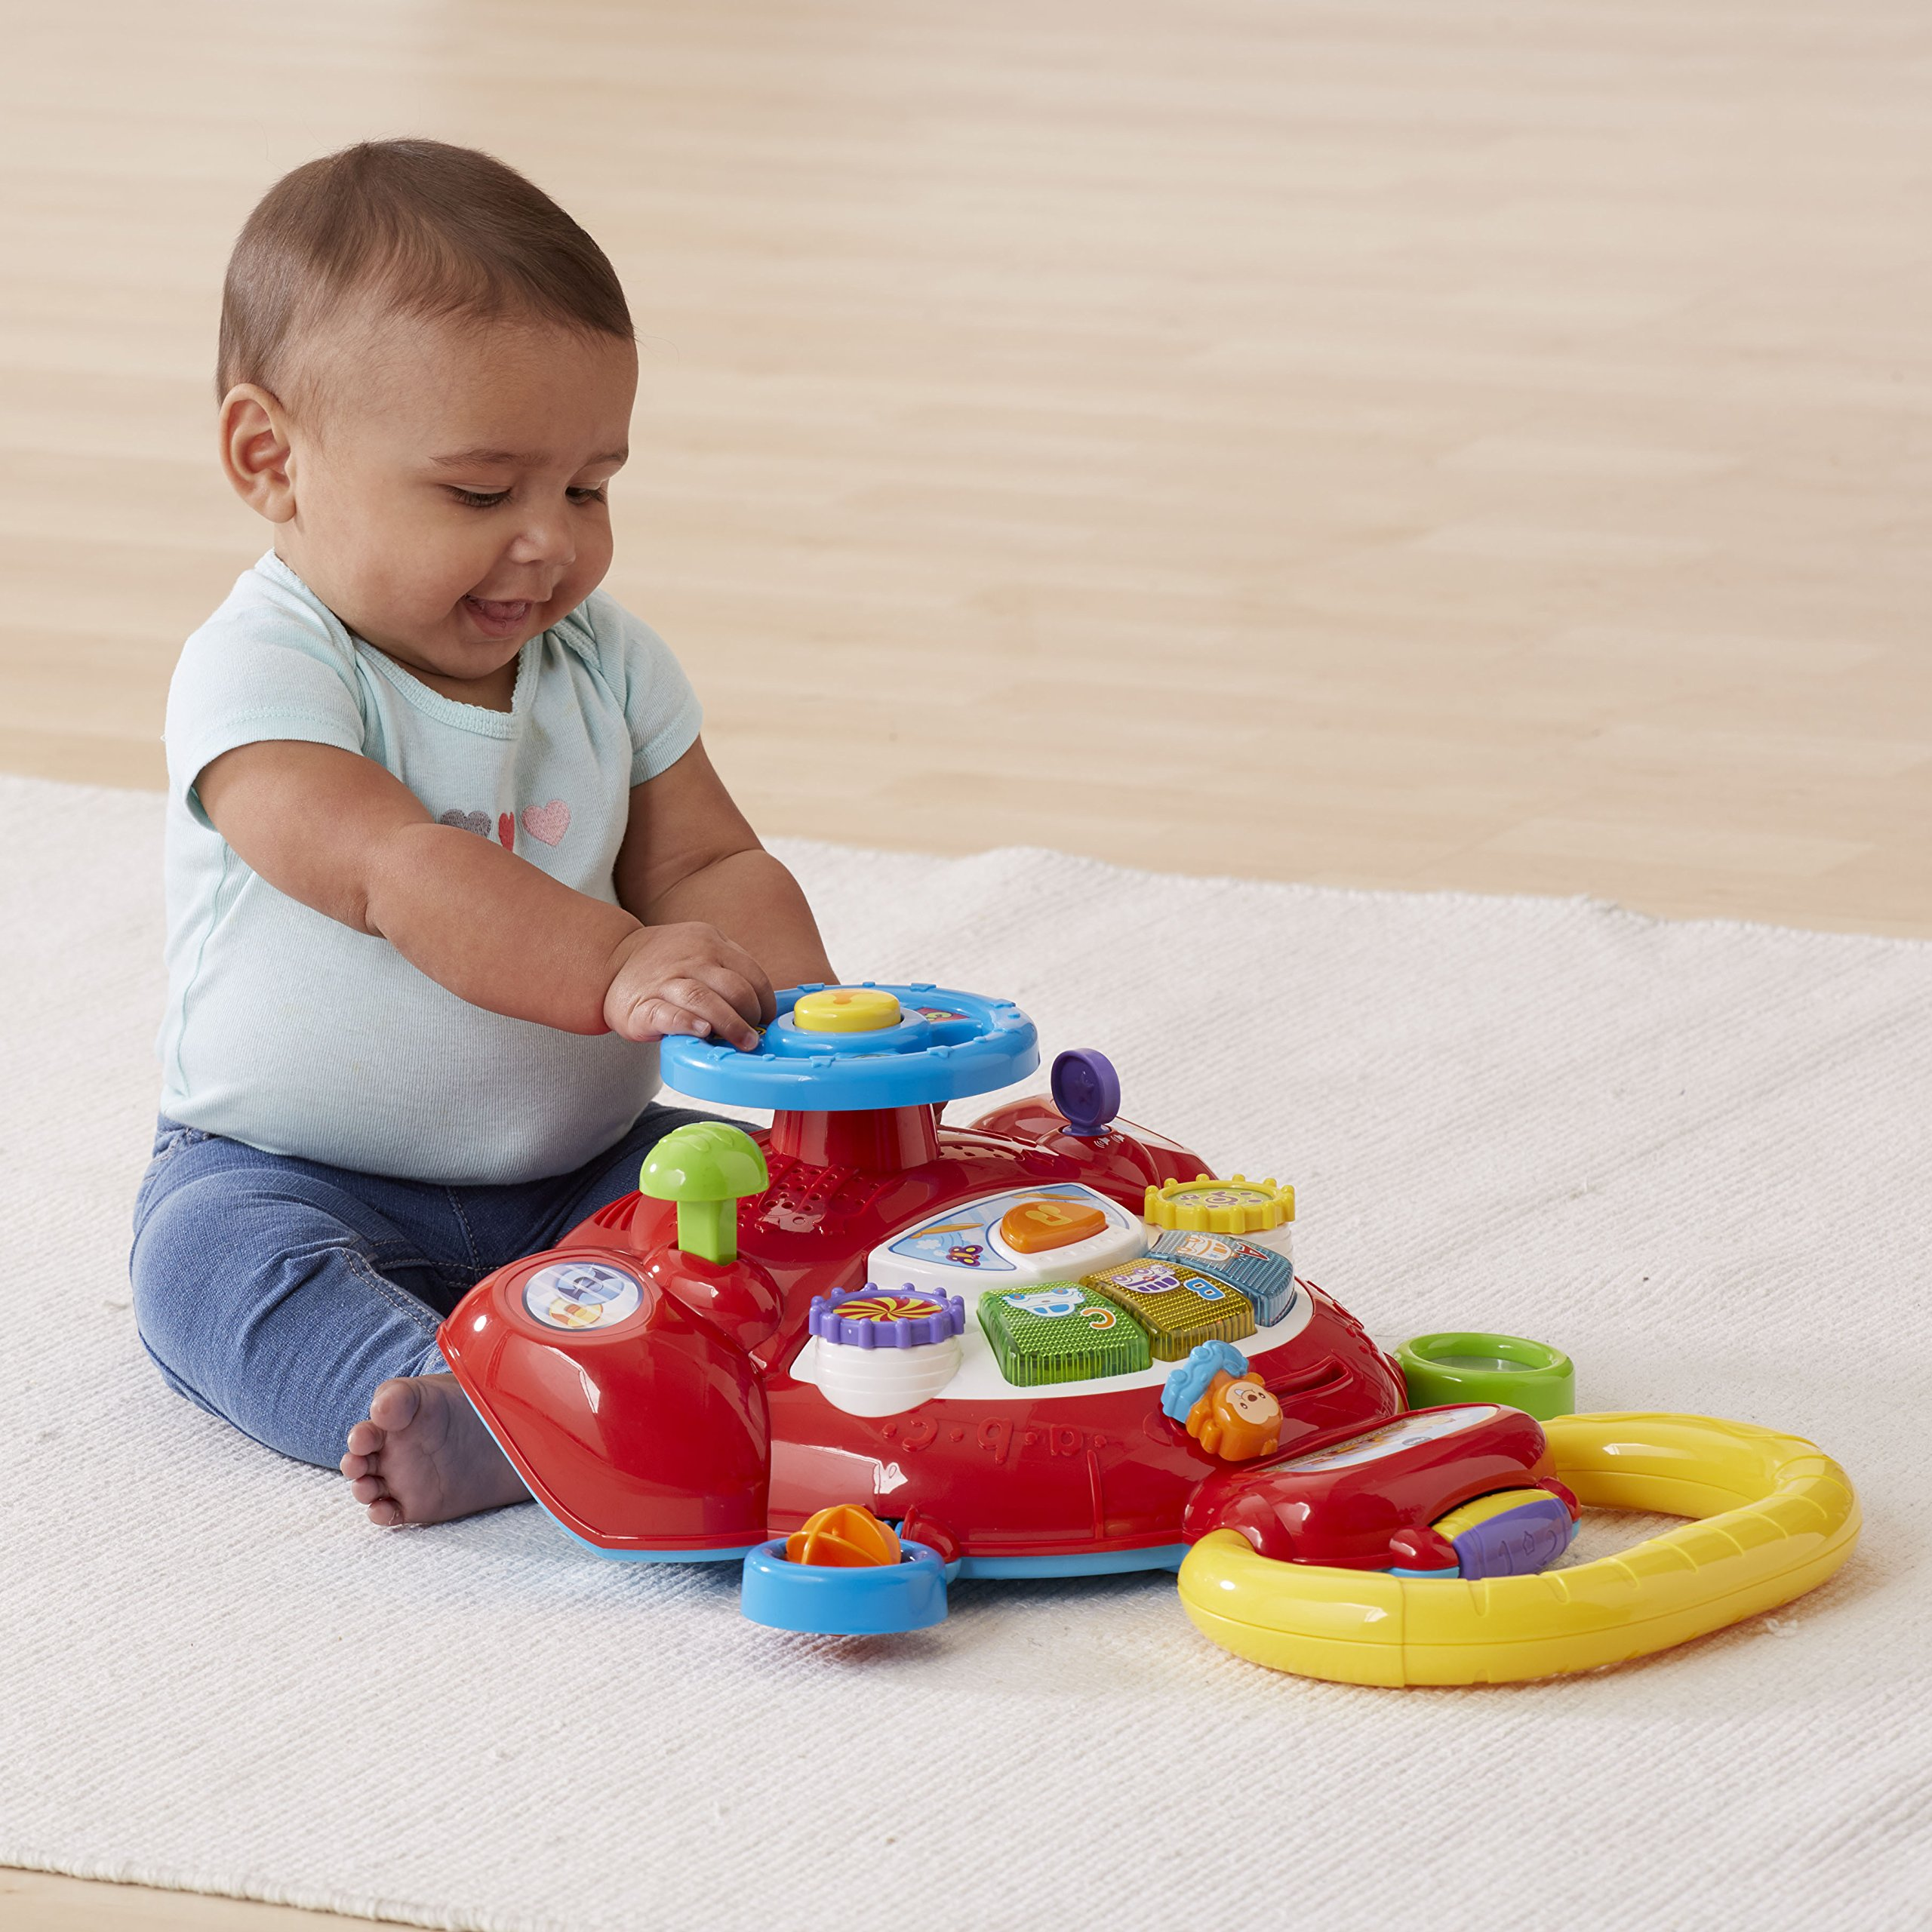 VTech Sit, Stand and Ride Baby Walker (Frustration Free Packaging) (Amazon Exclusive) by VTech (Image #6)